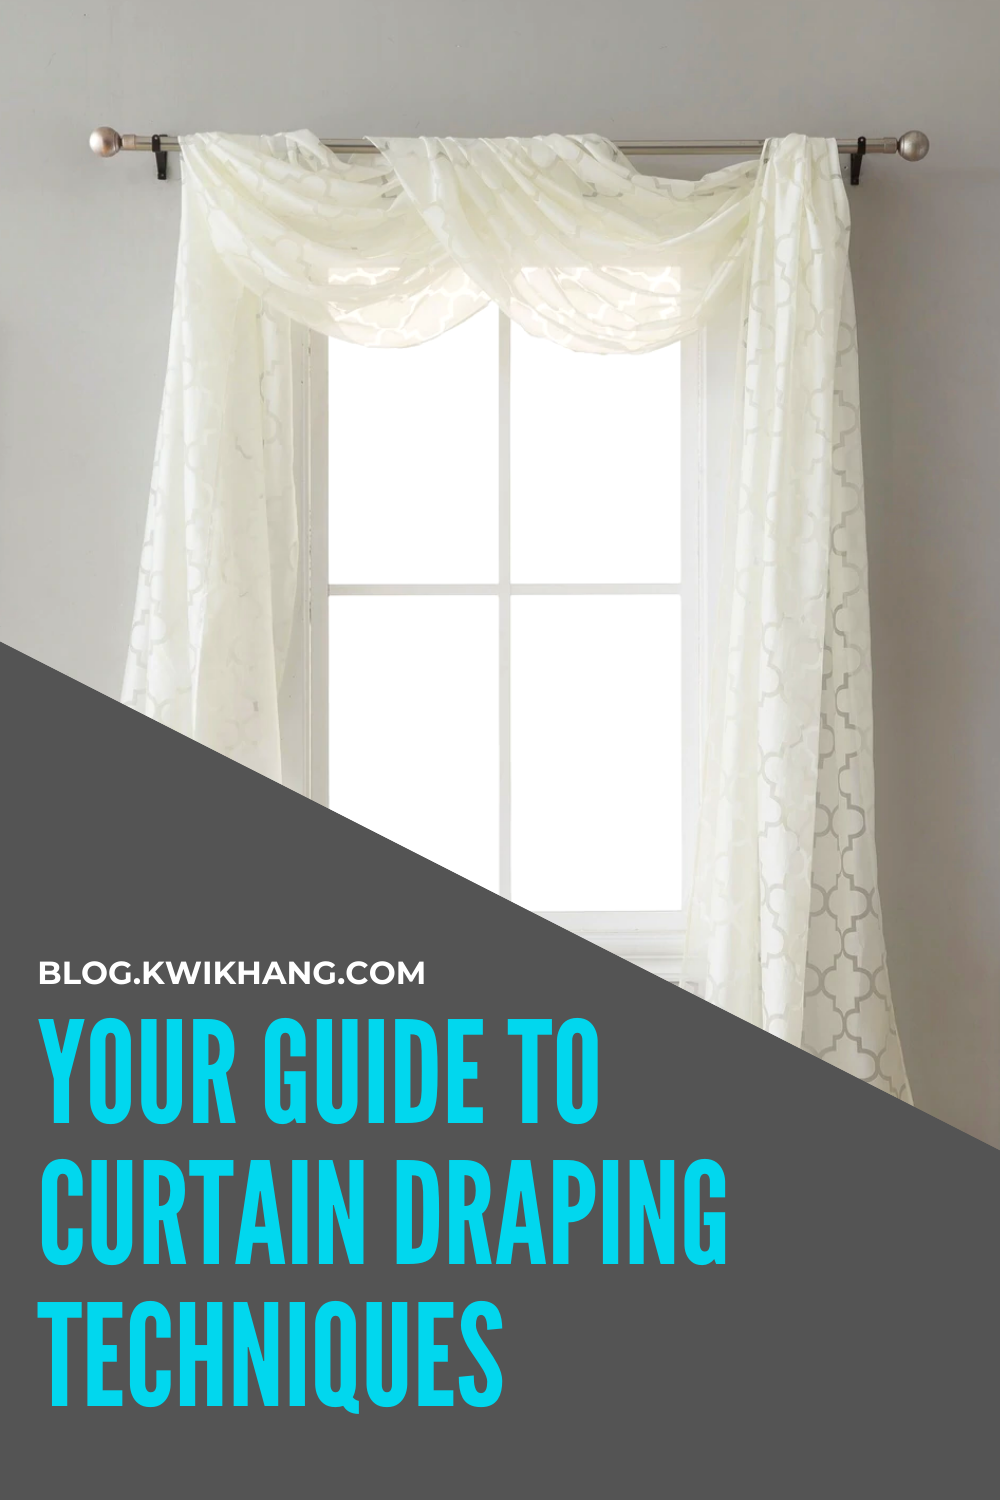 Your Guide To Curtain Draping Techniques In 2020 Draping Techniques Curtains Hanging Drapes